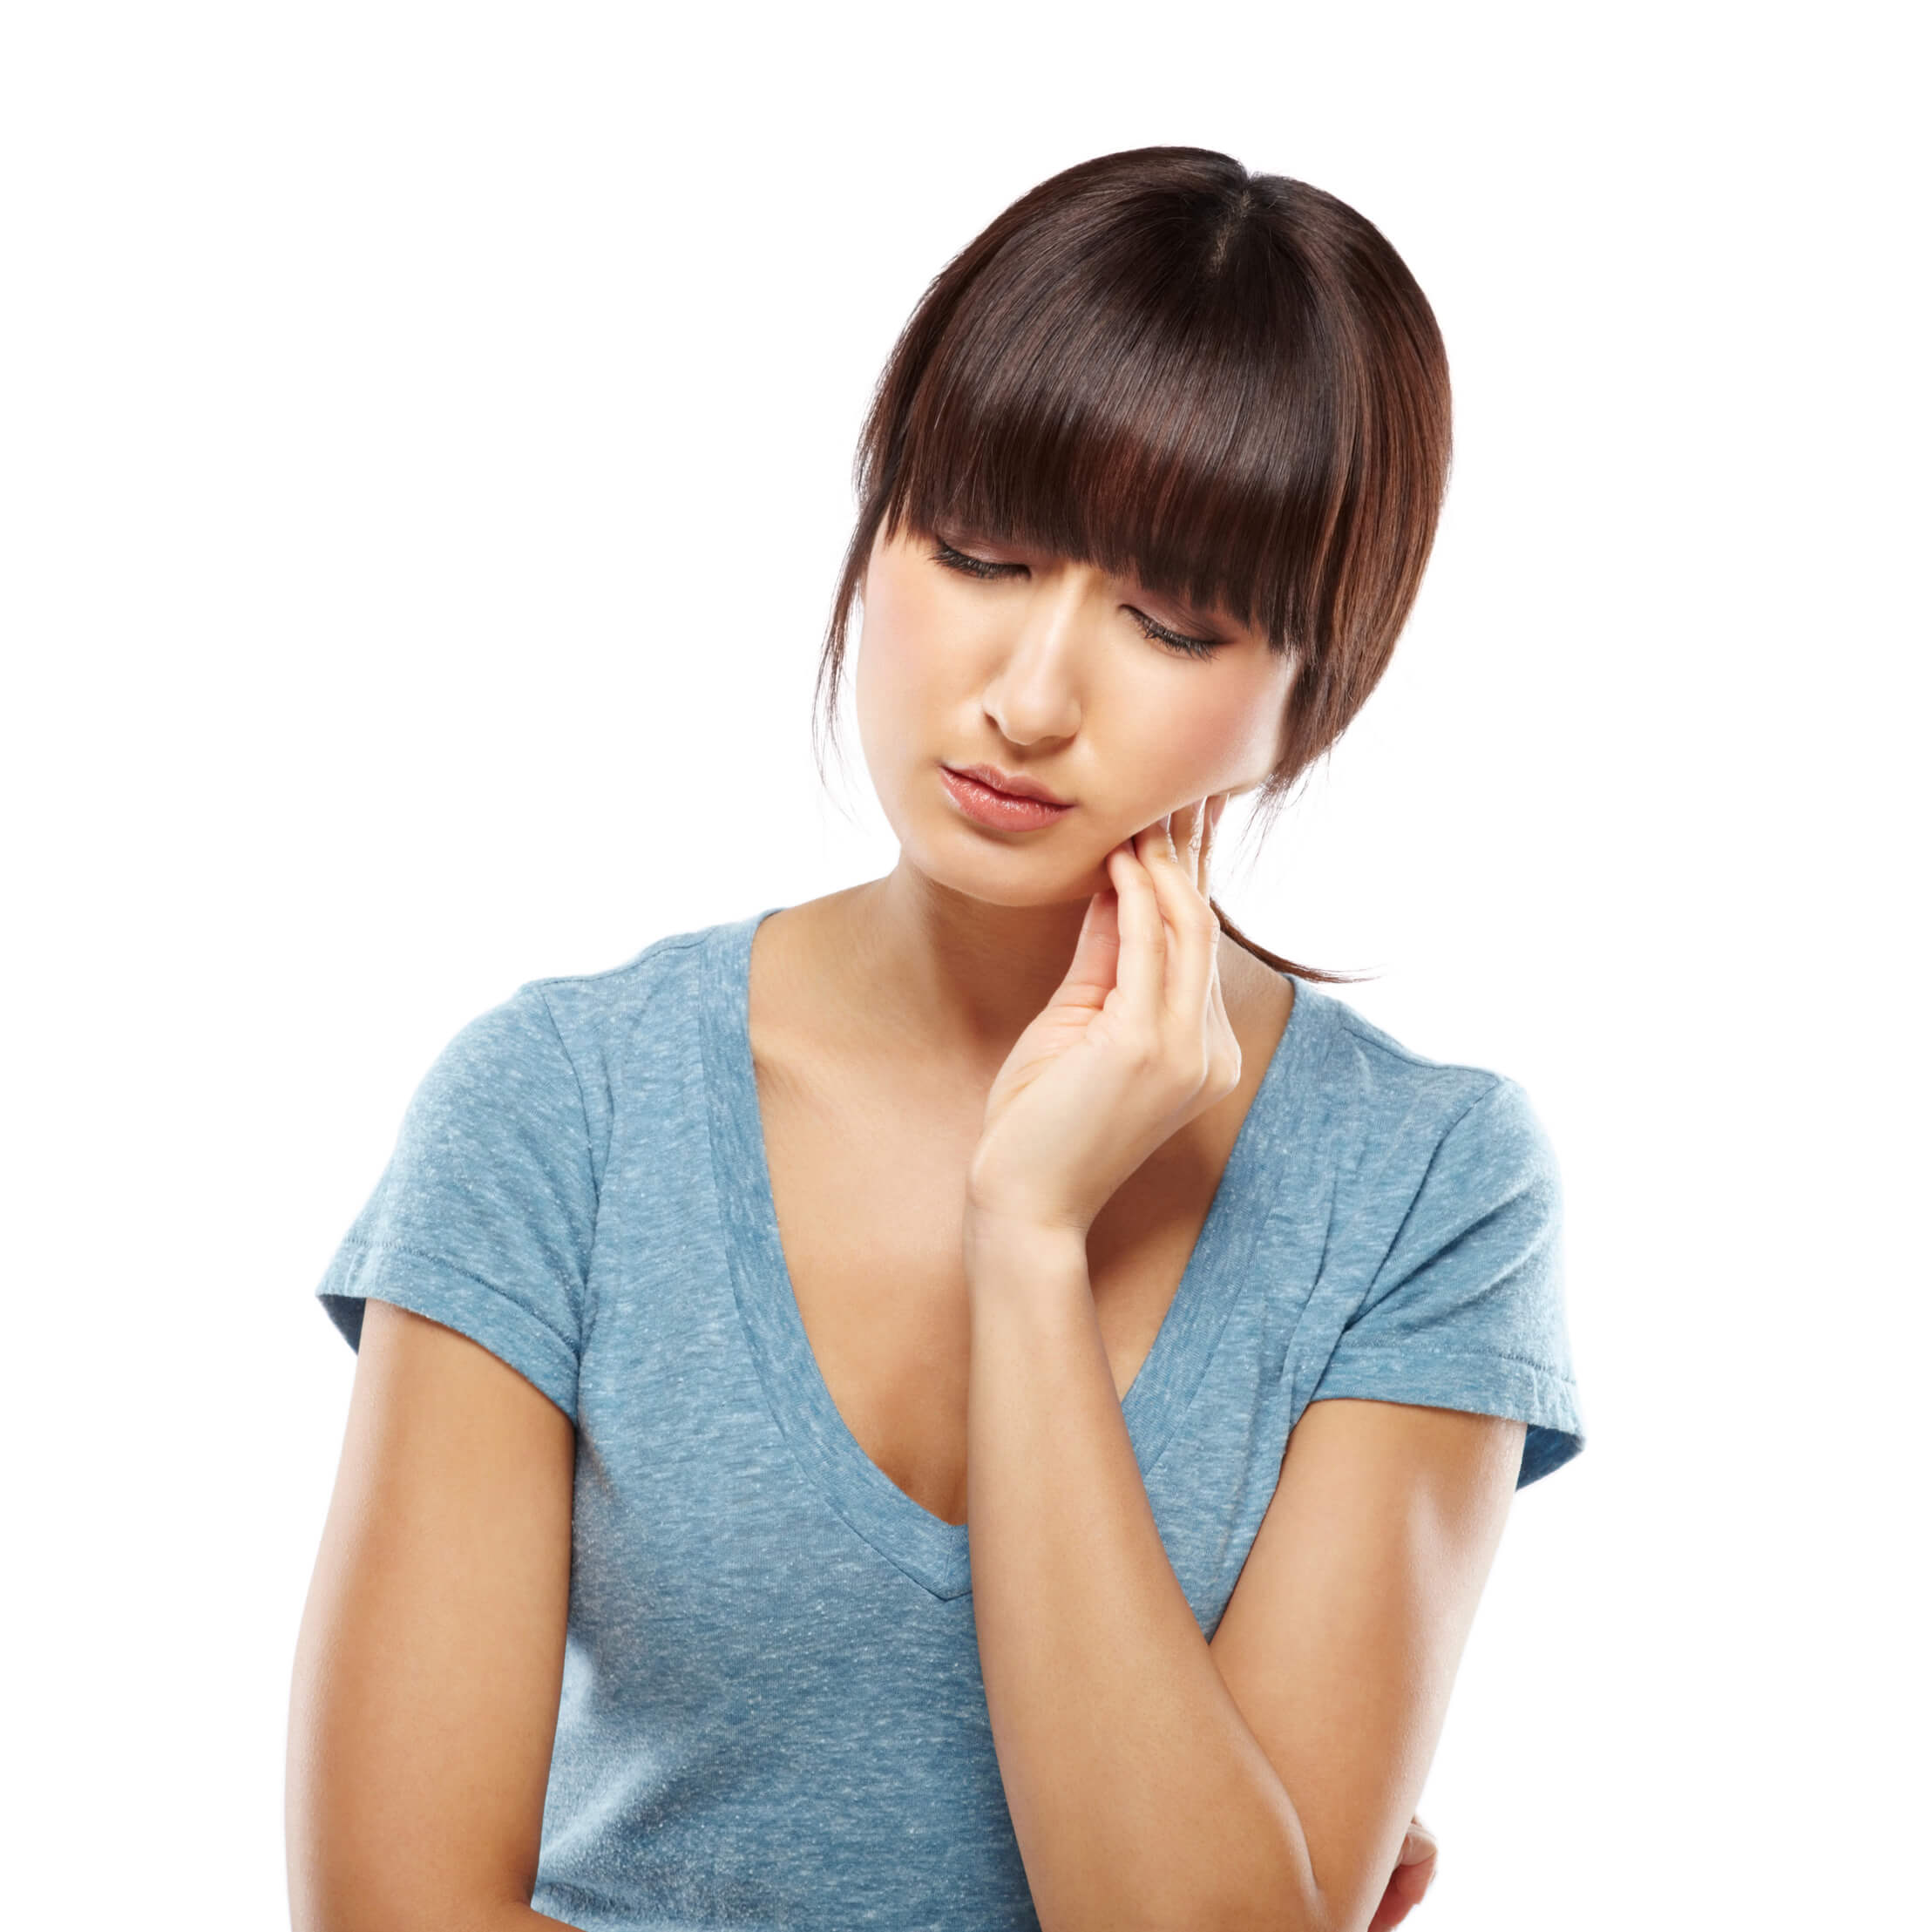 Woman suffering from TMJ pain (TMD)